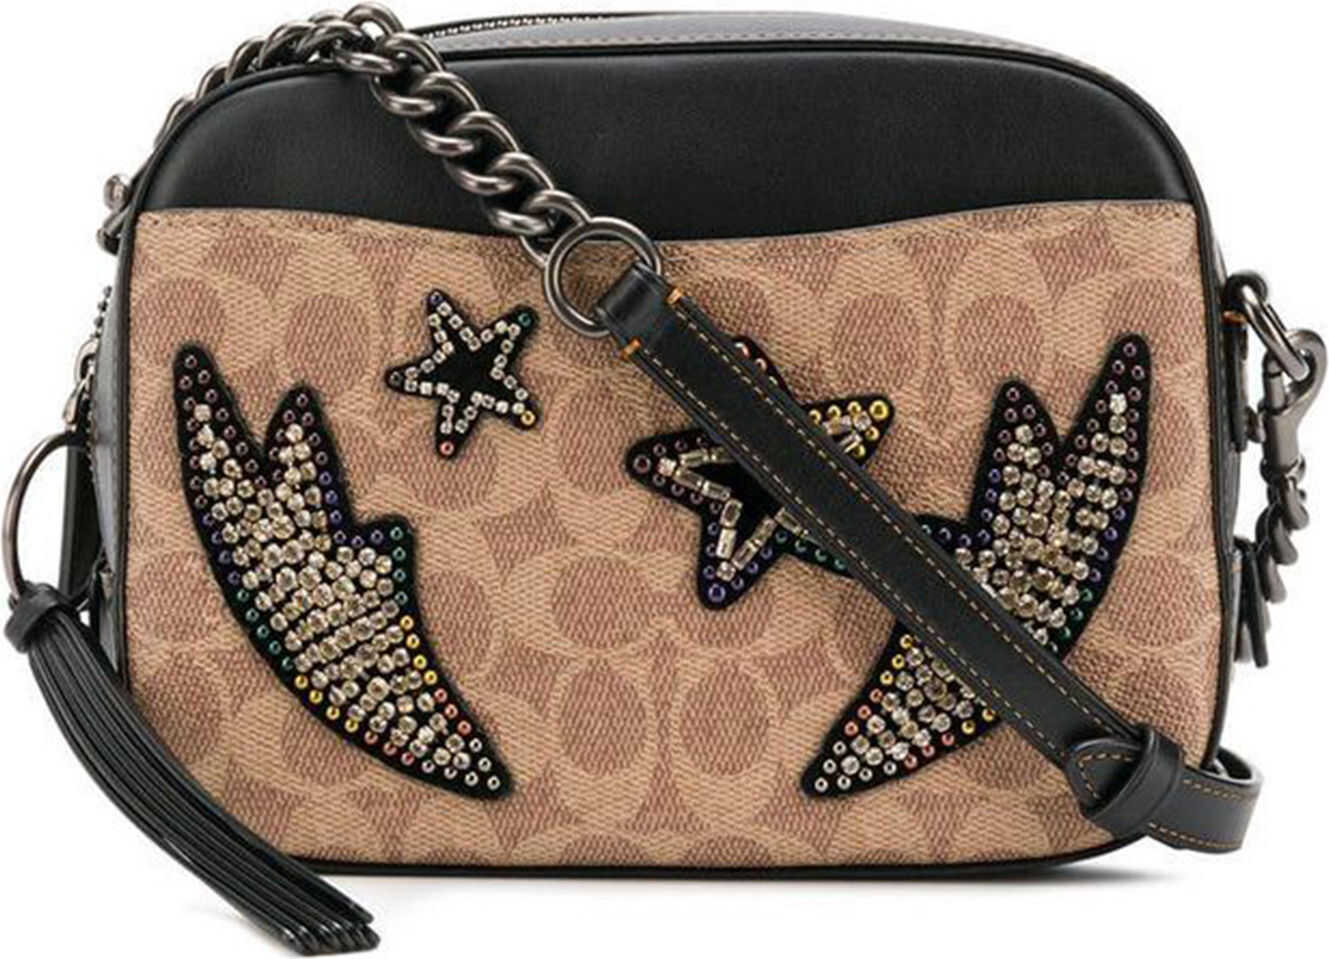 COACH 31652 BROWN image0